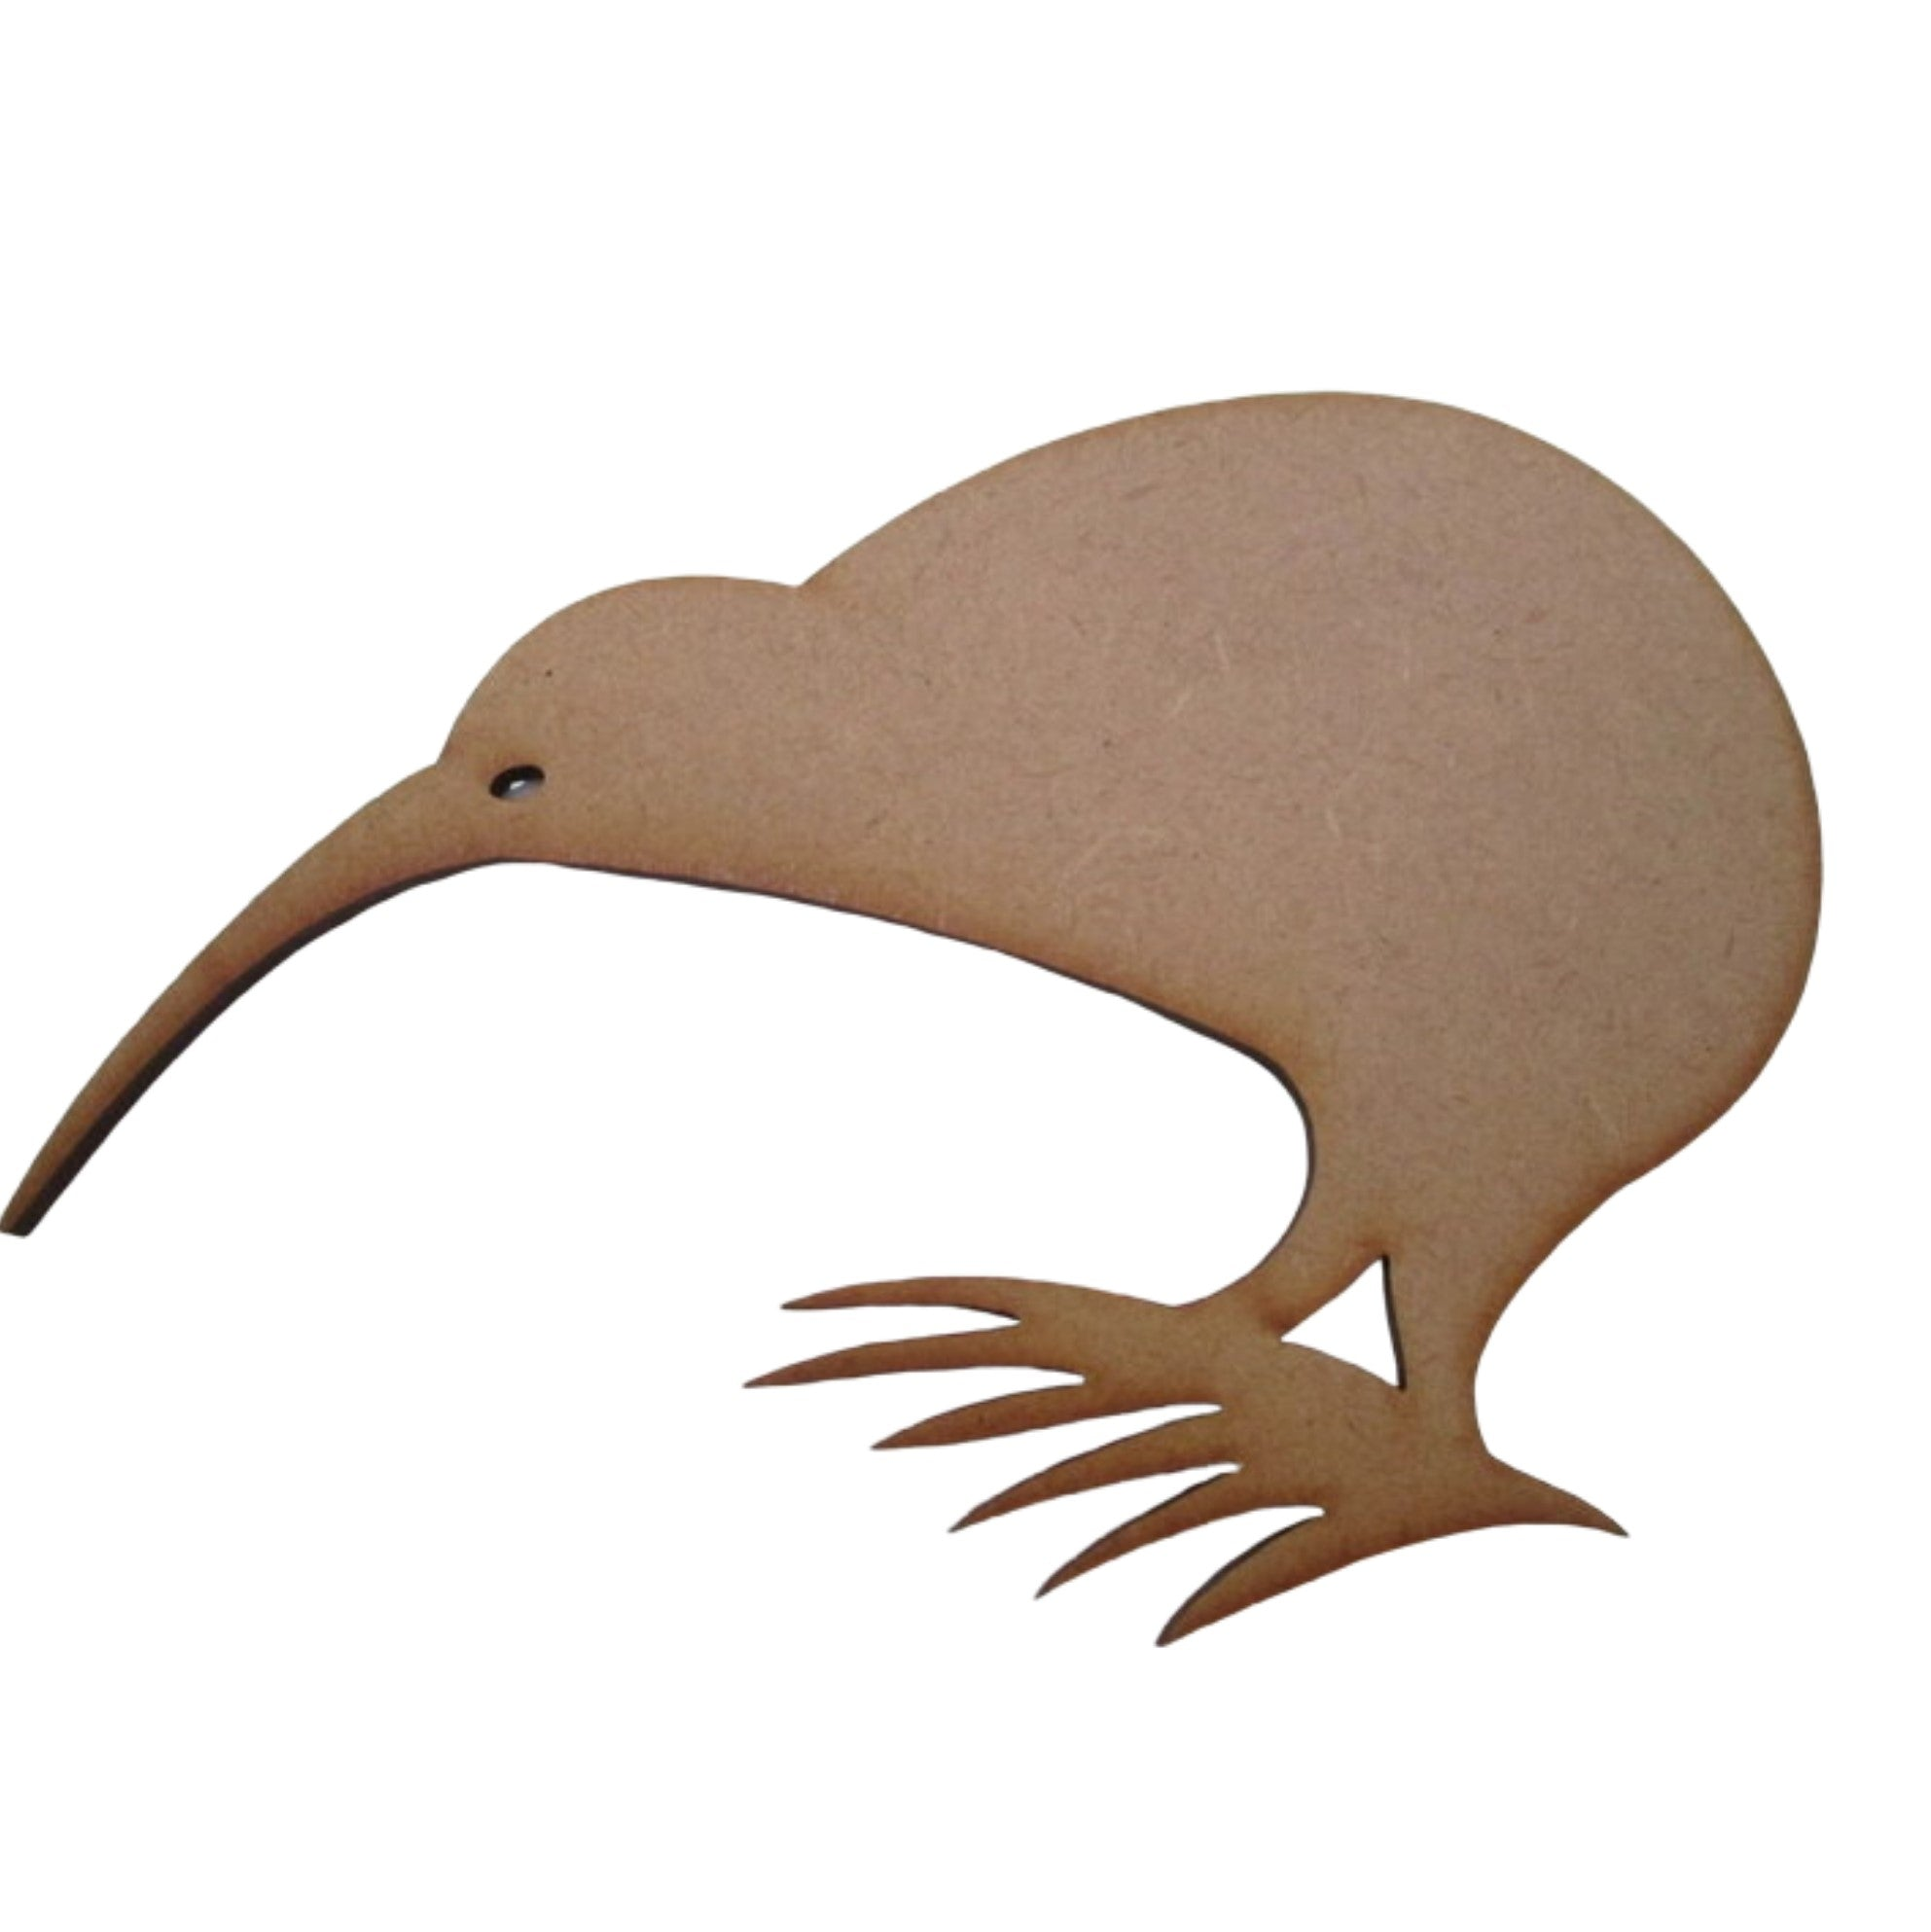 Kiwi tracing shape